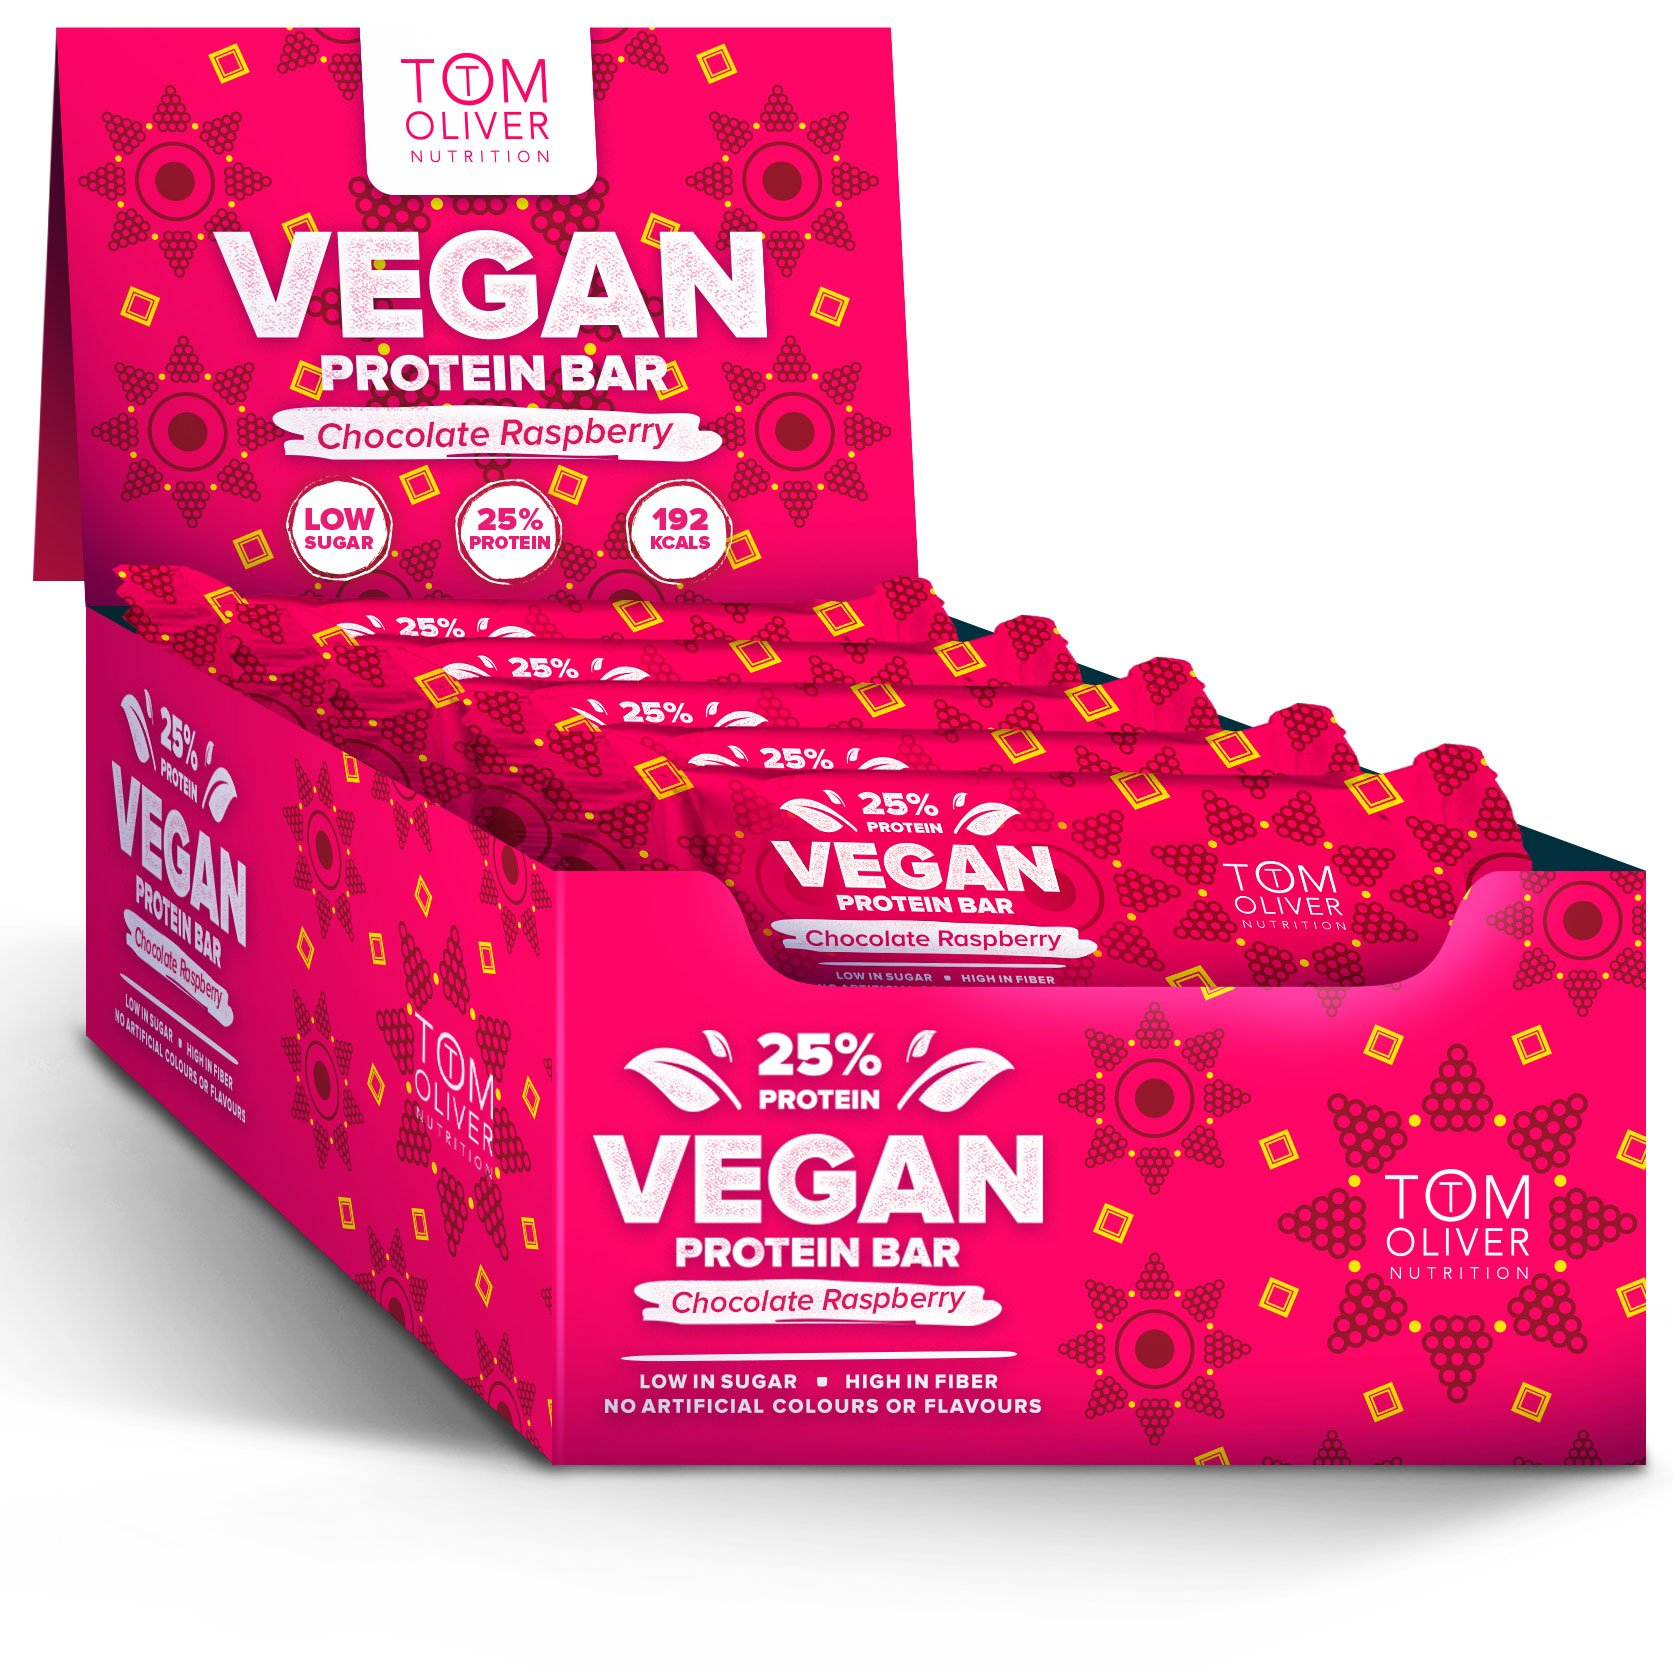 Tom Oliver Nutrition - Vegan High Protein Bars - Pack of 20 (Chocolate Raspberry) product image